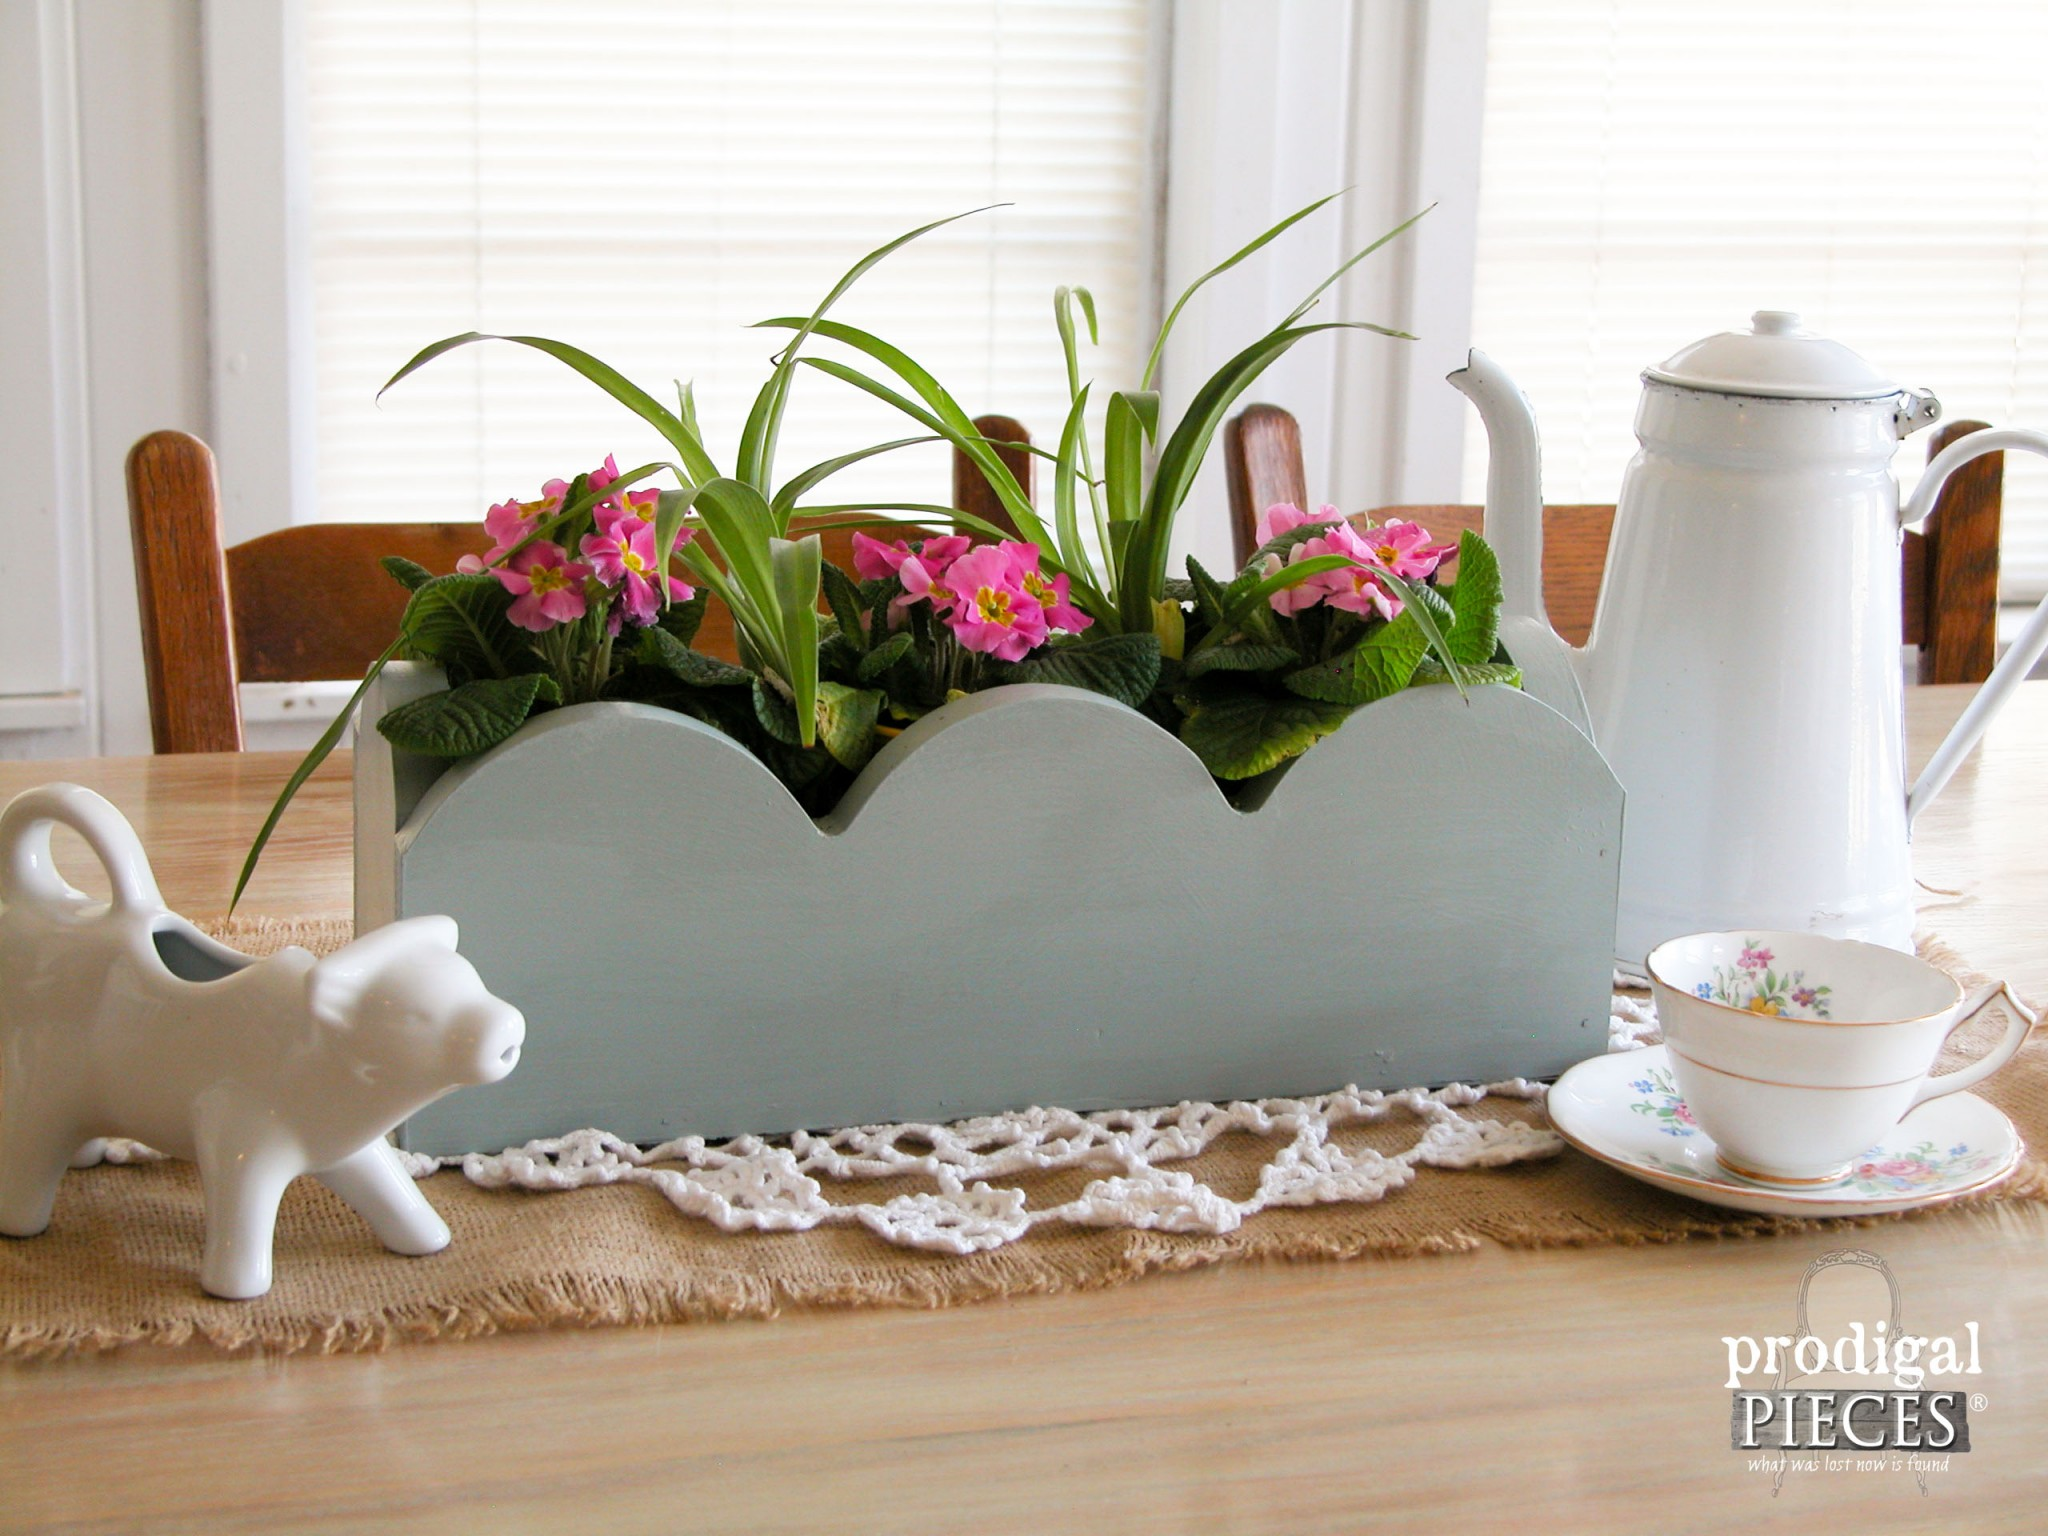 Table Centerpiece made from Repurposed Kitchen Cabinets by Prodigal Pieces | www.prodigalpieces.com